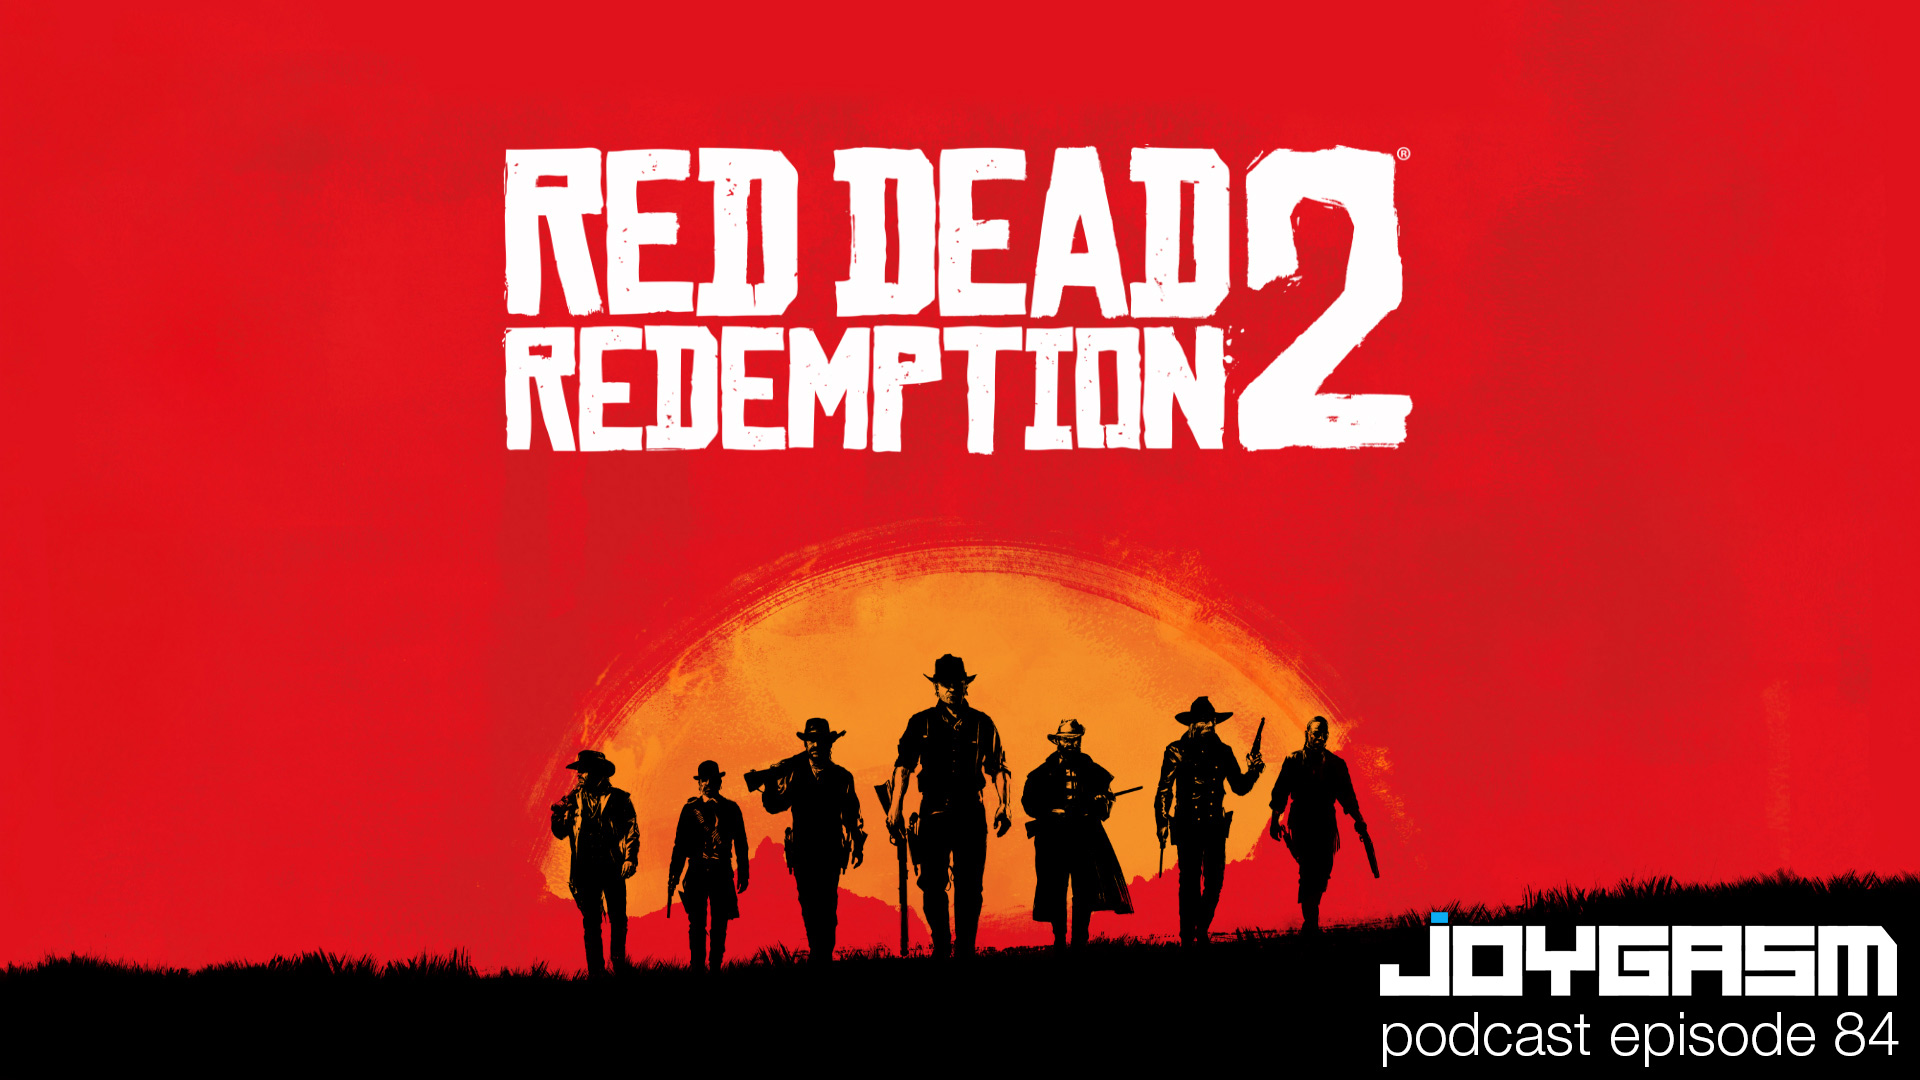 Ep. 84: Red Dead Redemption 2 Gameplay Impressions, Art of Metal Gear Solid Book, & More